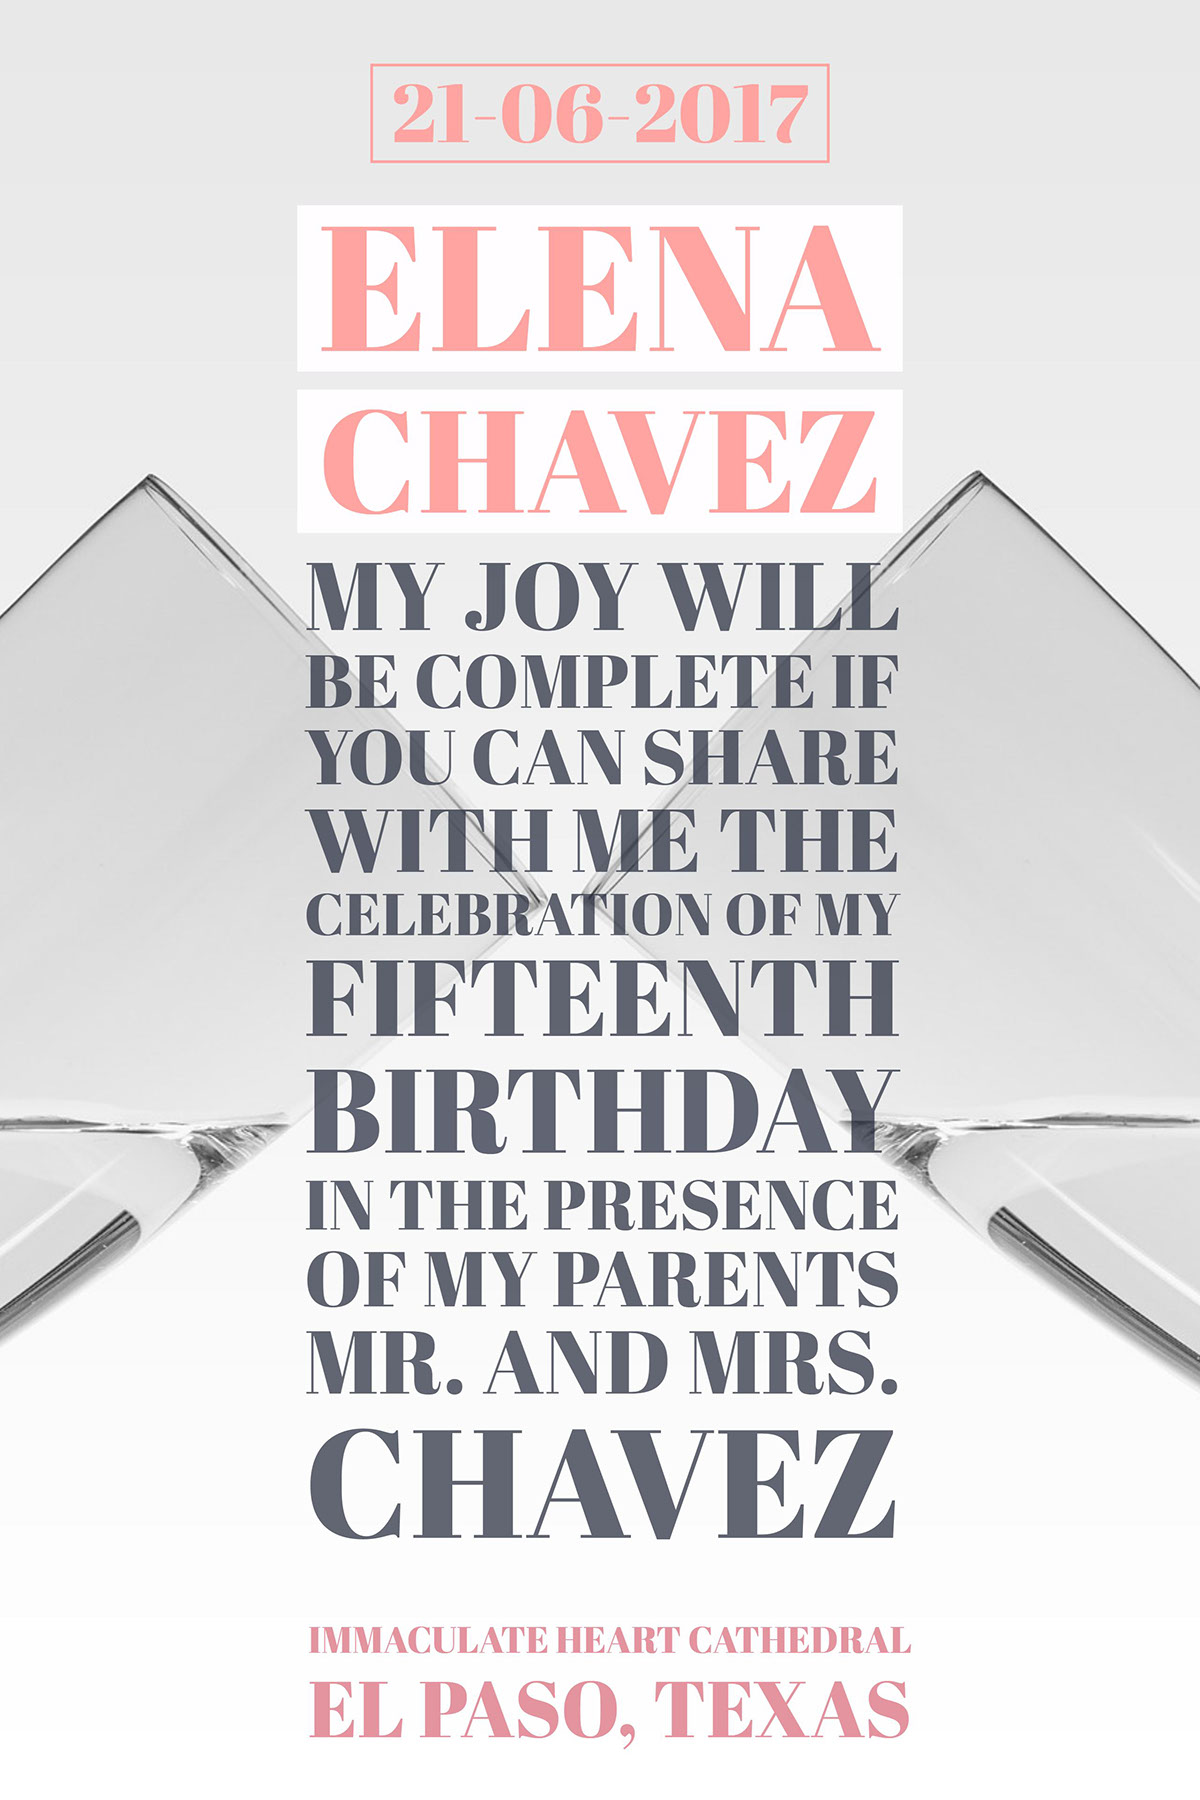 My joy will be complete if you can share with me the celebration of my Fifteenth Birthday in the presence of my parents Mr. and Mrs. Chavez  My joy will be complete if you can share with me the celebration of my Fifteenth Birthday in the presence of my parents Mr. and Mrs. Chavez  